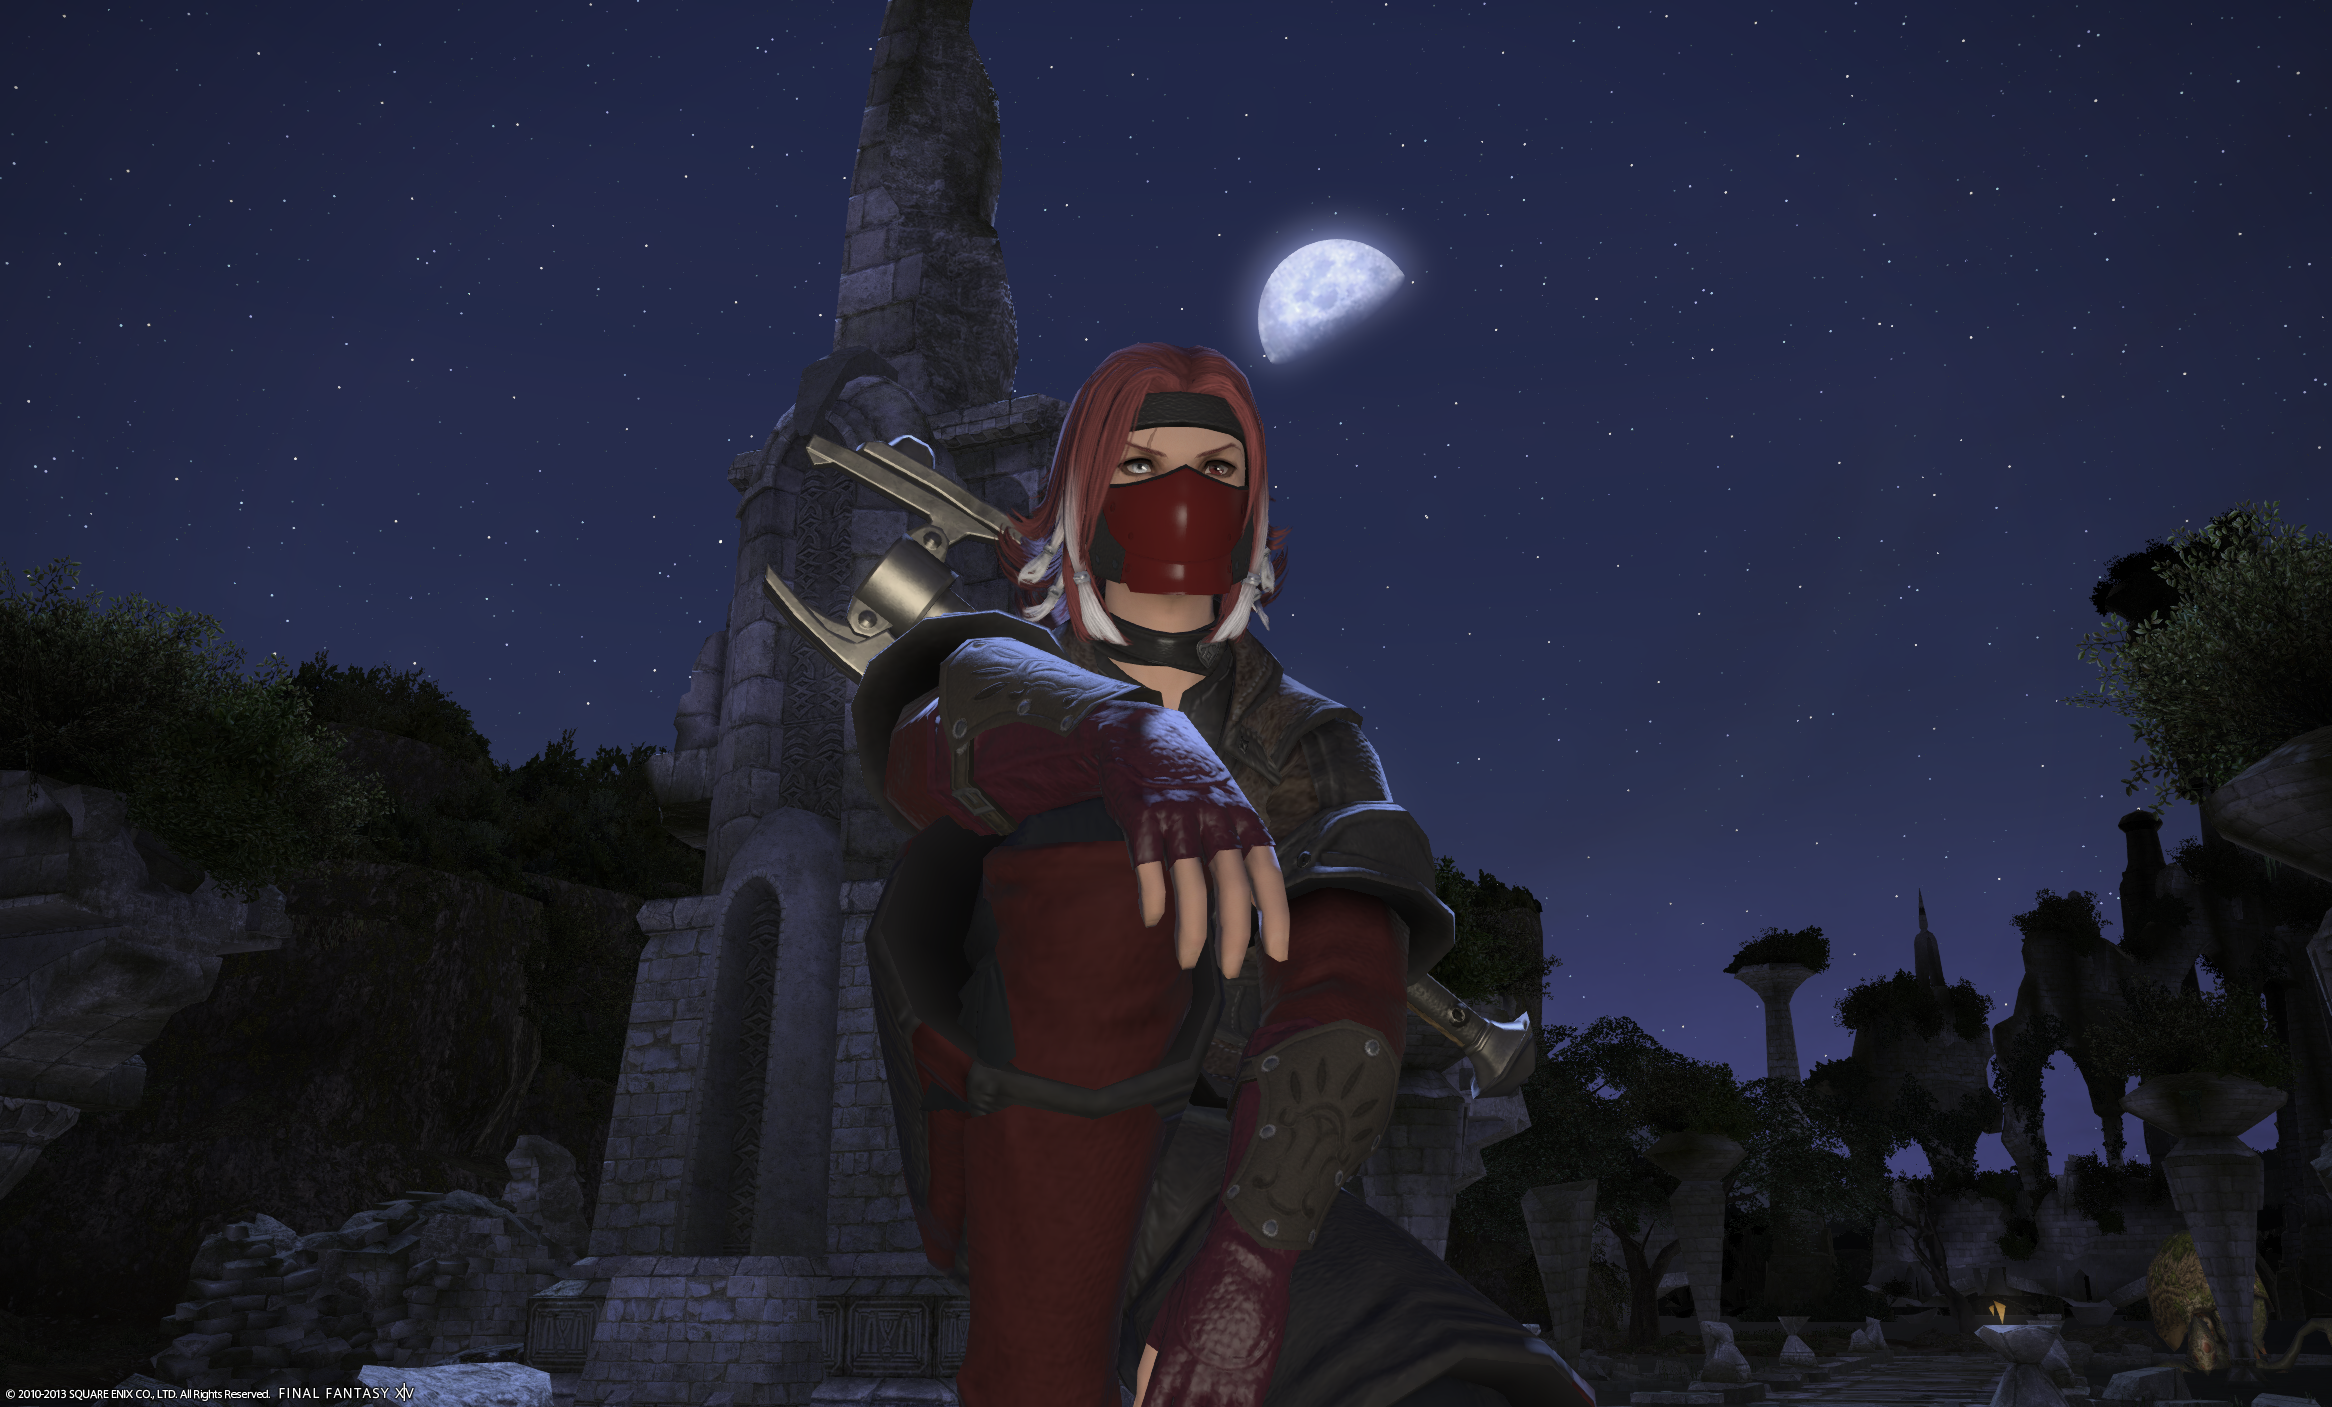 bluefan ffxiv scaling them hurts down bucket size file need bigger 1920 stupid reborn screenshot thread realm fantasy 1017 somewhat less with release final